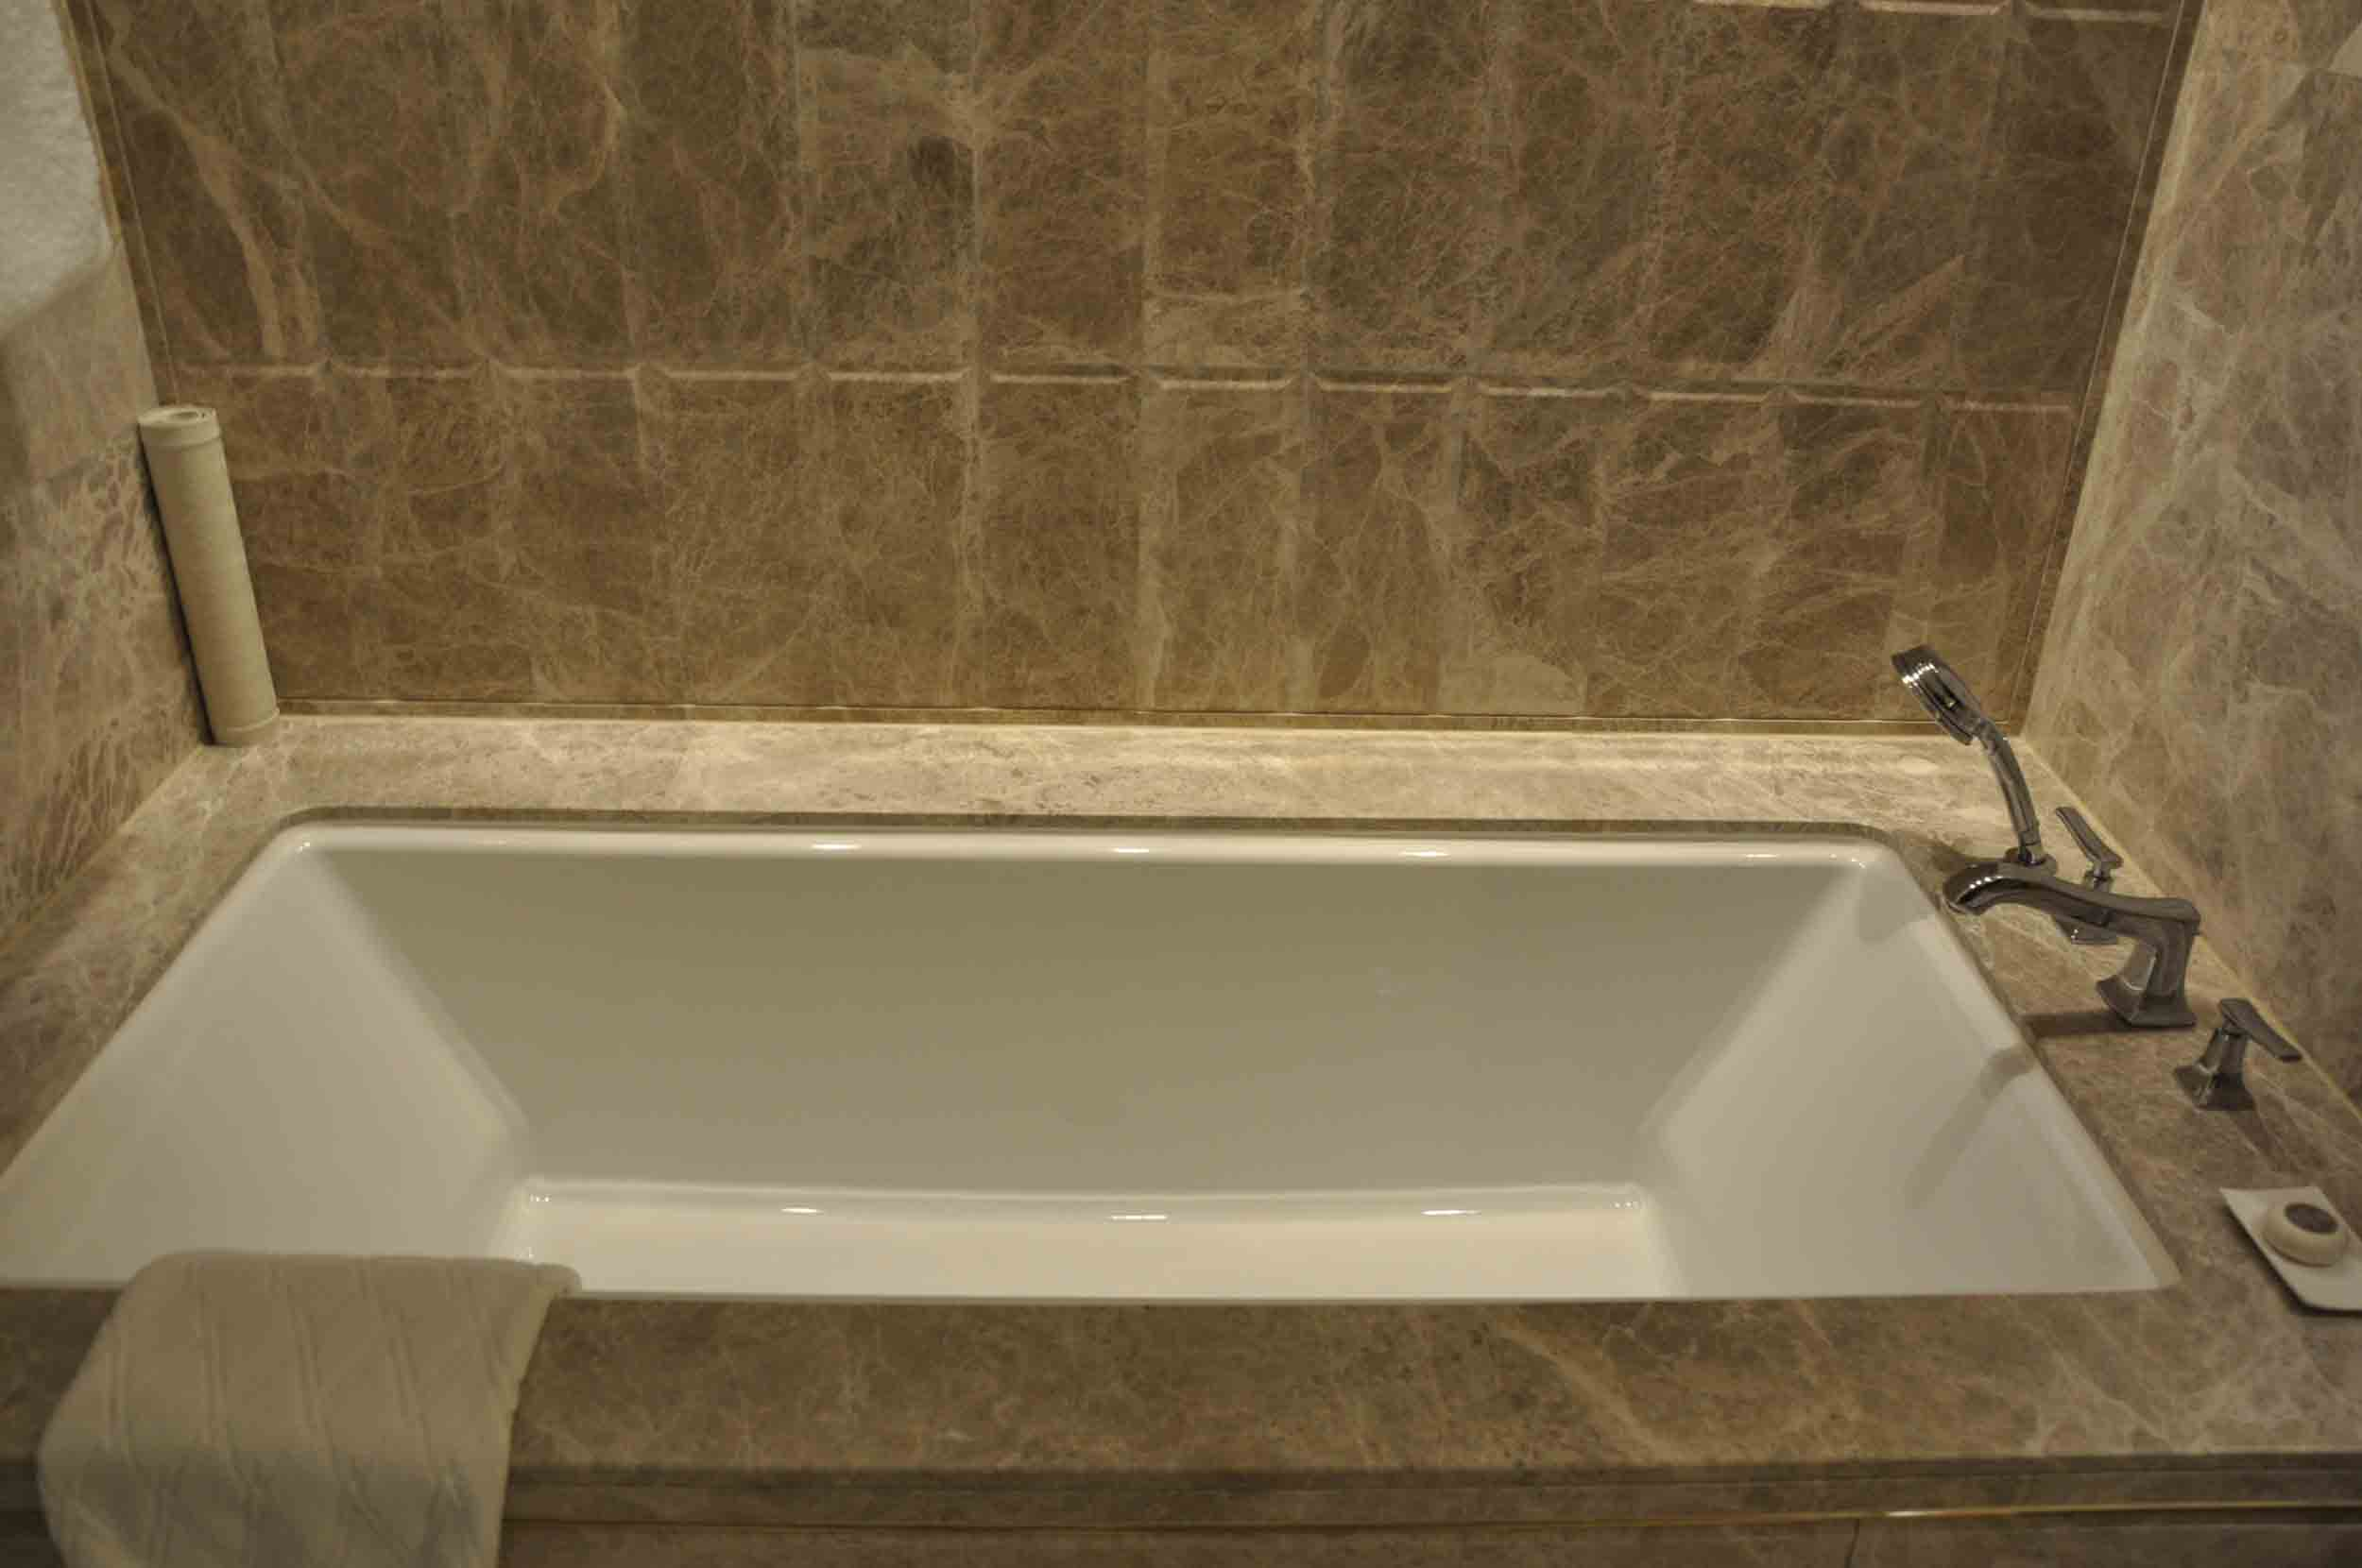 Studio City Macau Star Premium KIng Suite bathtub